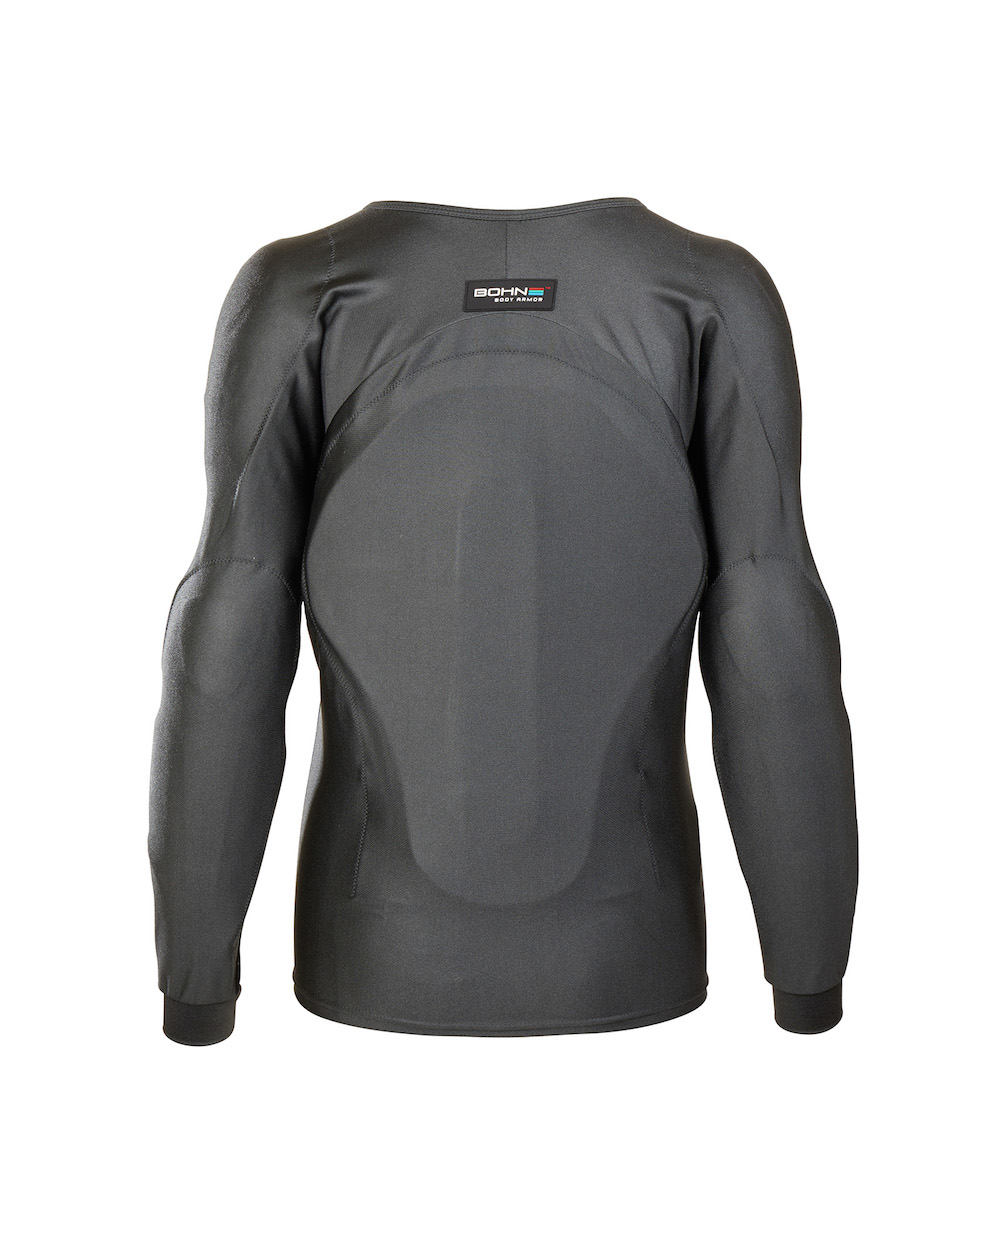 Performance thermal armored riding shirt bohn body armor for Motorcycle body armor shirt